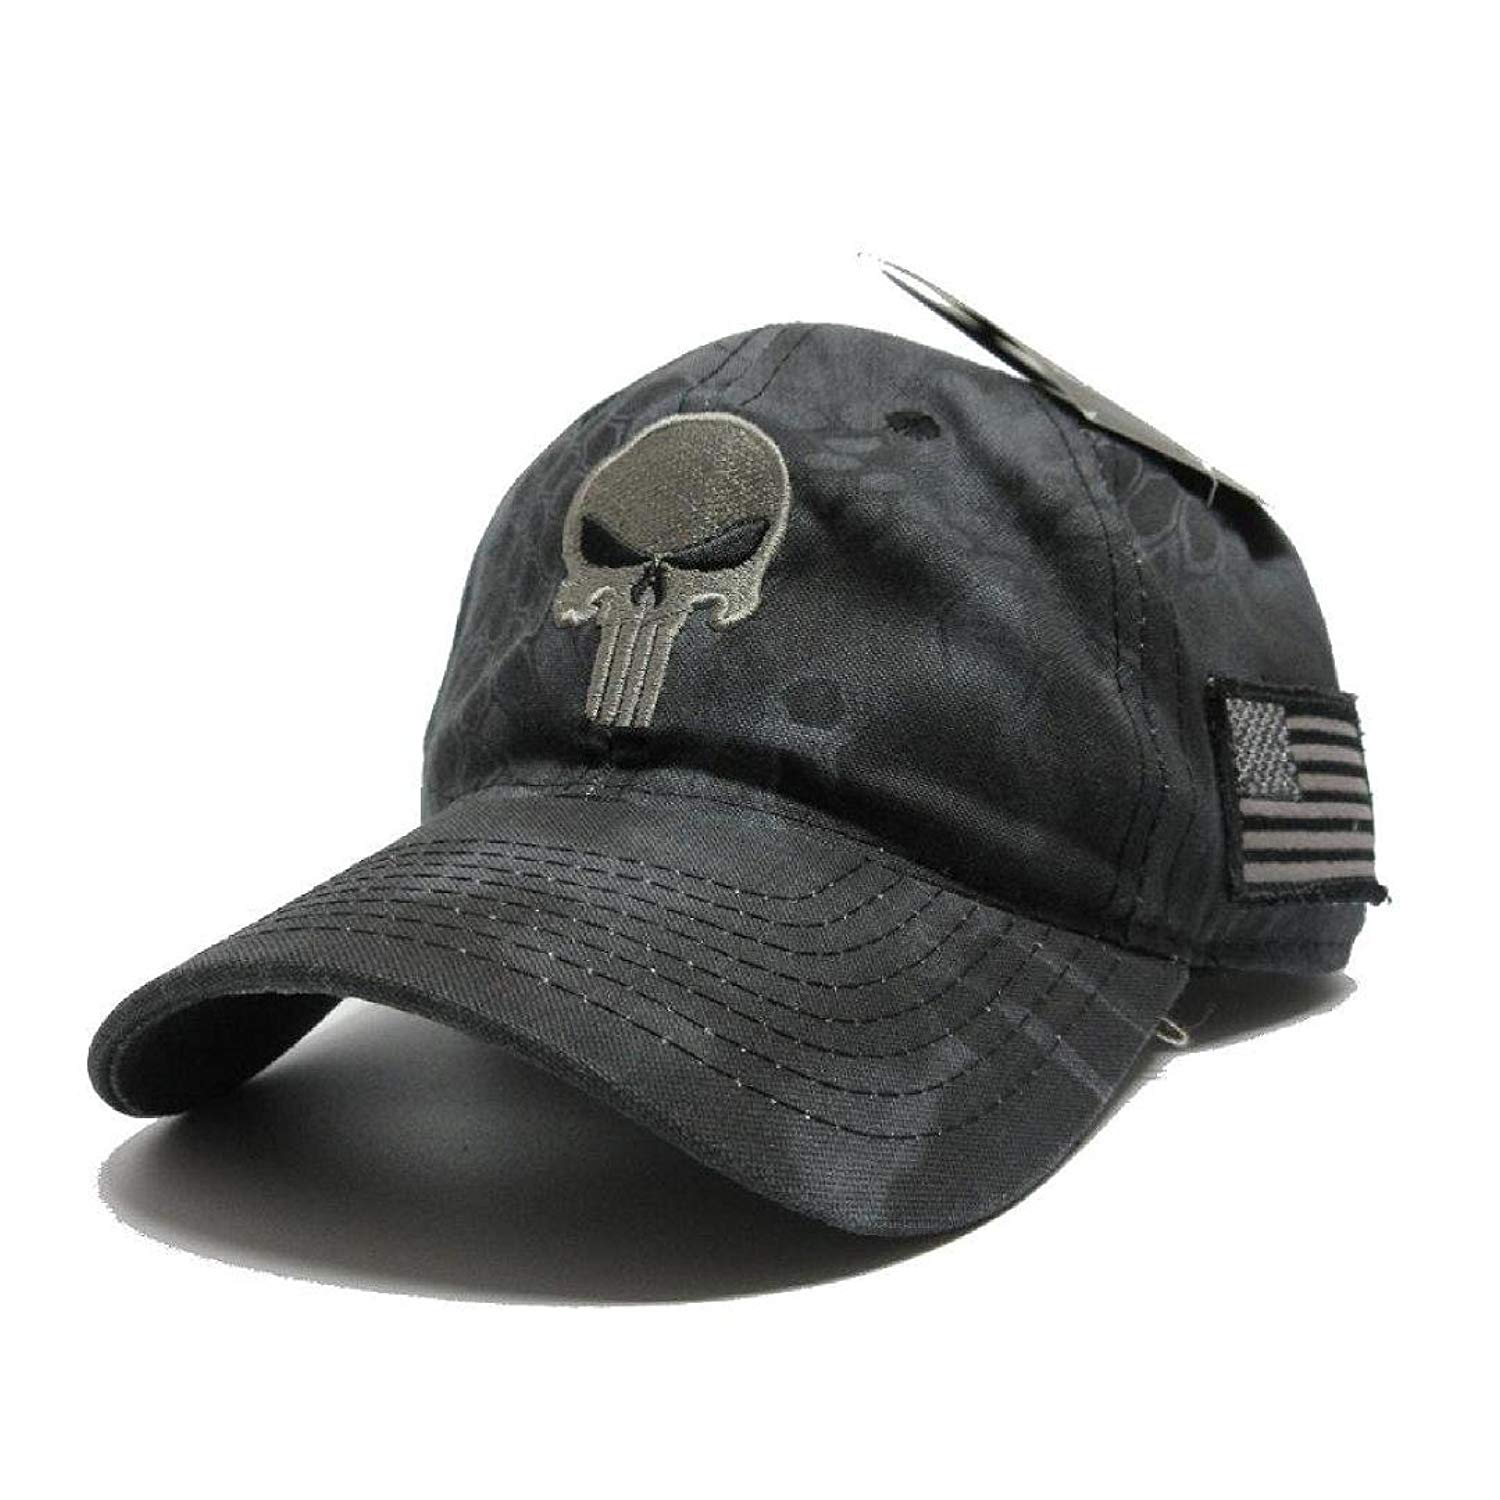 ccf2632132d52 Get Quotations · Military imagine Kryptek Punisher Skull camo Hat Gray w US  Flag Patch Cap Tactical